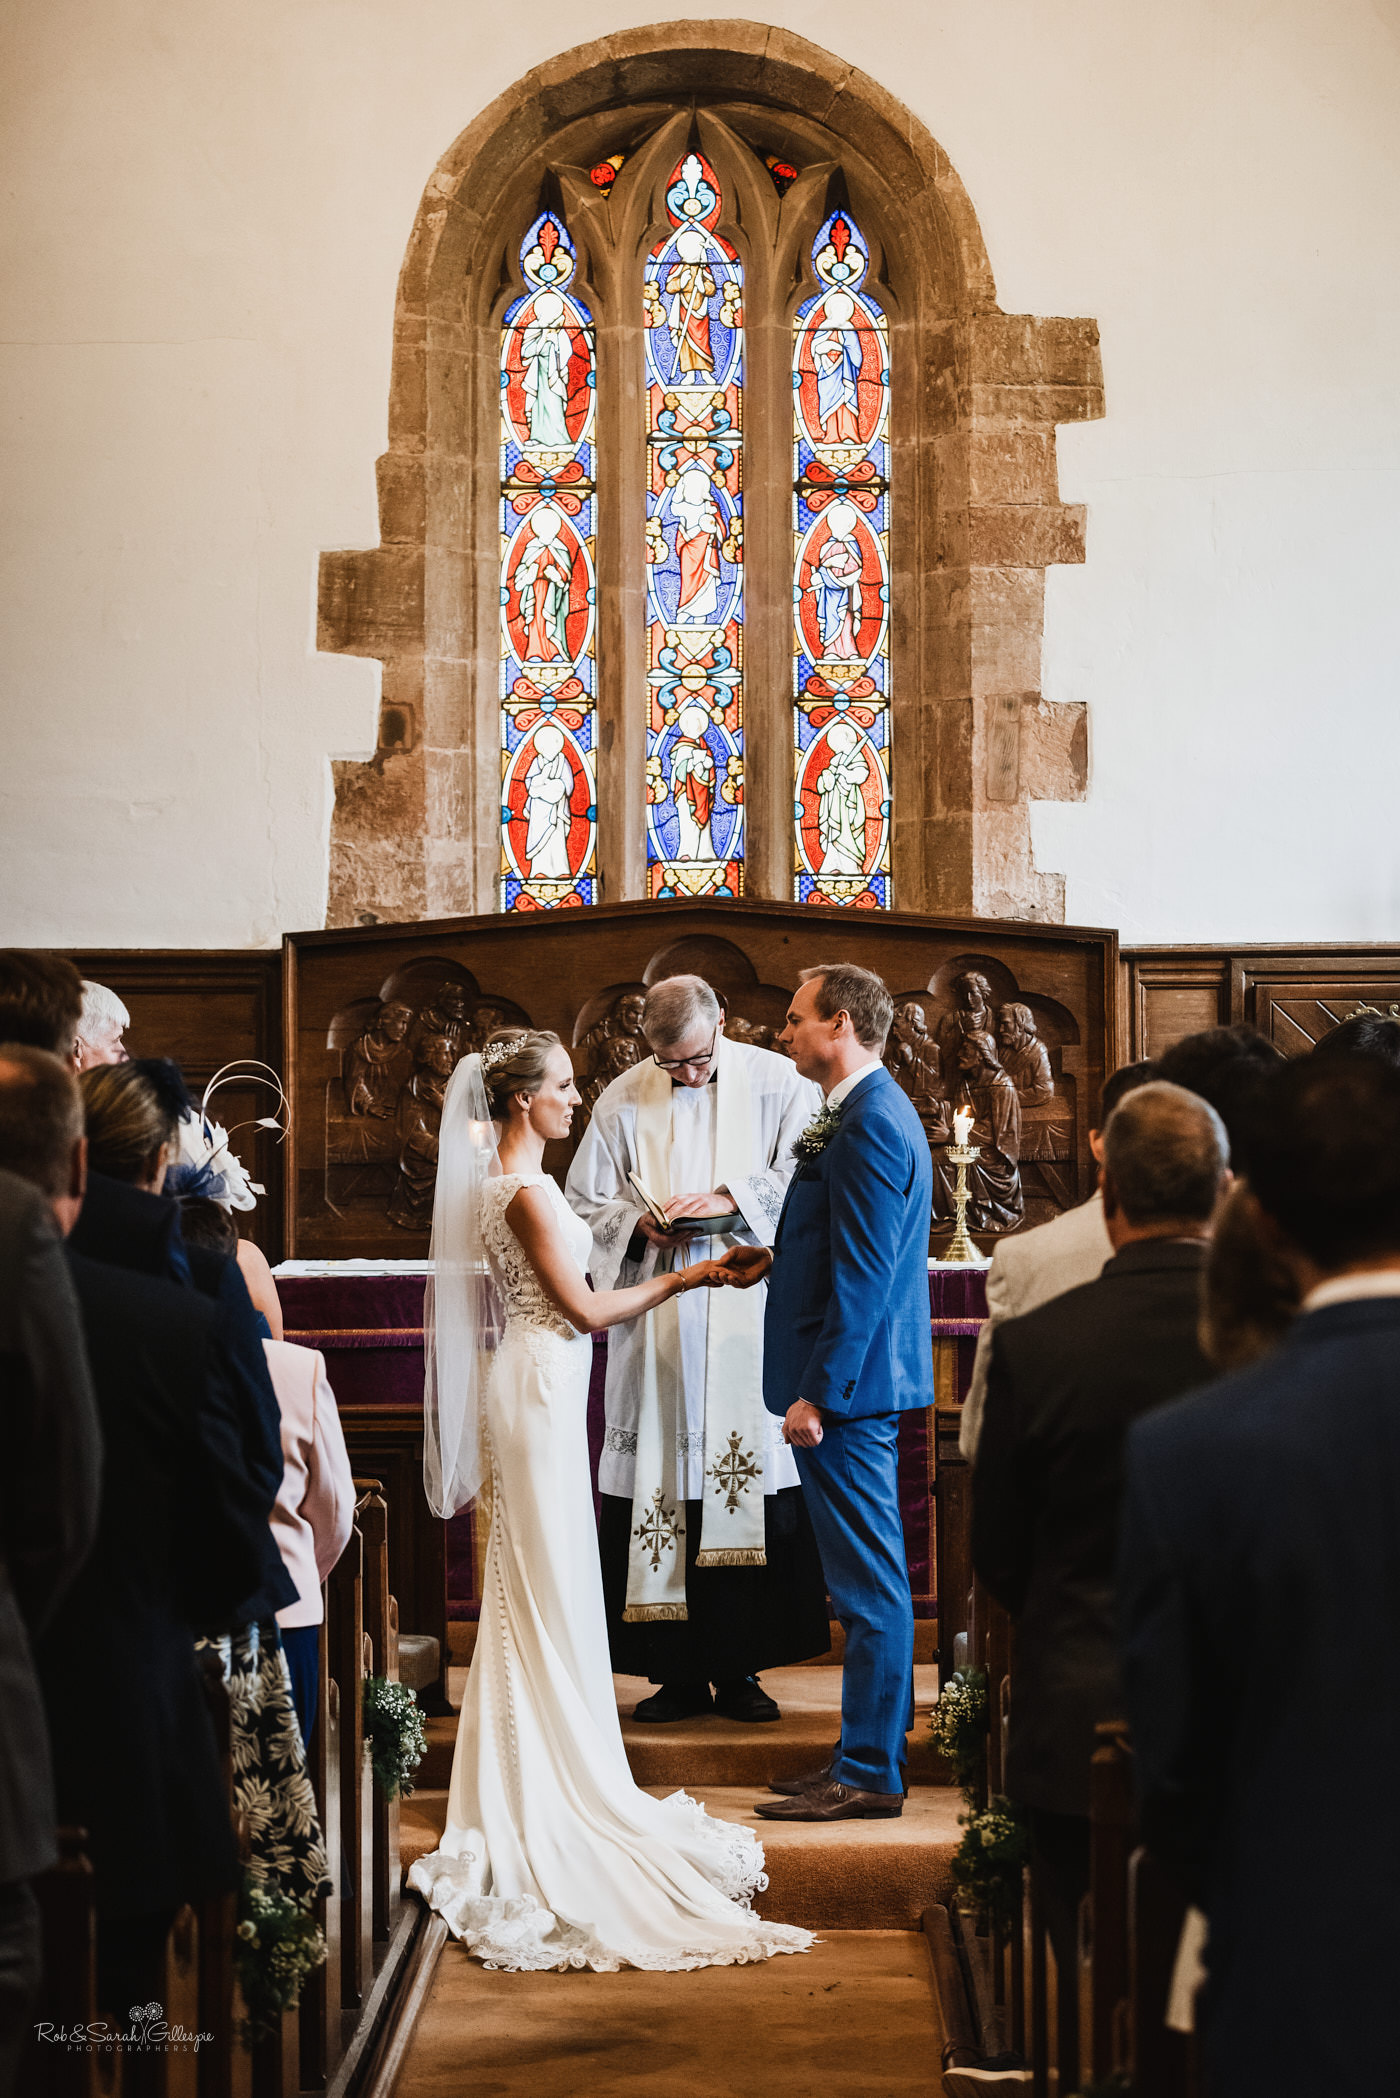 Bride and groom exchange rings during wedding at St Kenelm's church